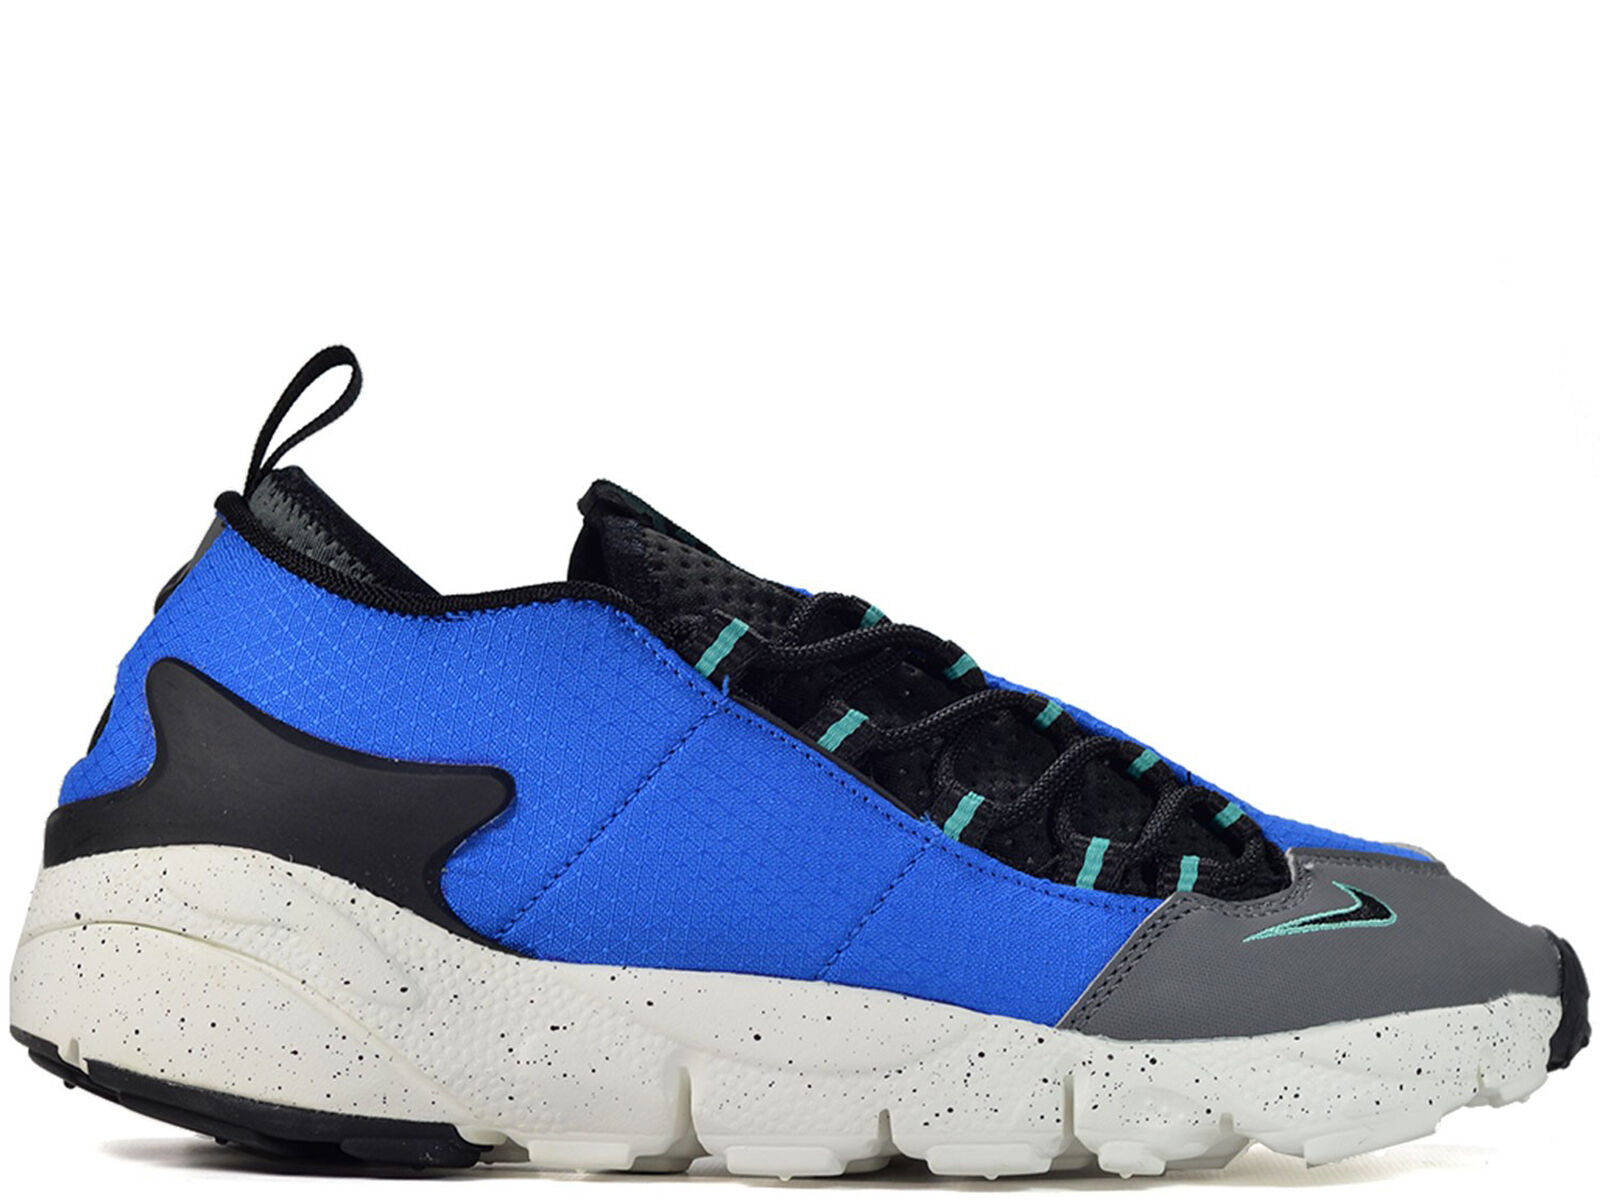 Men's Brand New Nike Air Footscape NM Athletic Fashion Fashion Fashion scarpe da ginnastica [852629 400] bc790b